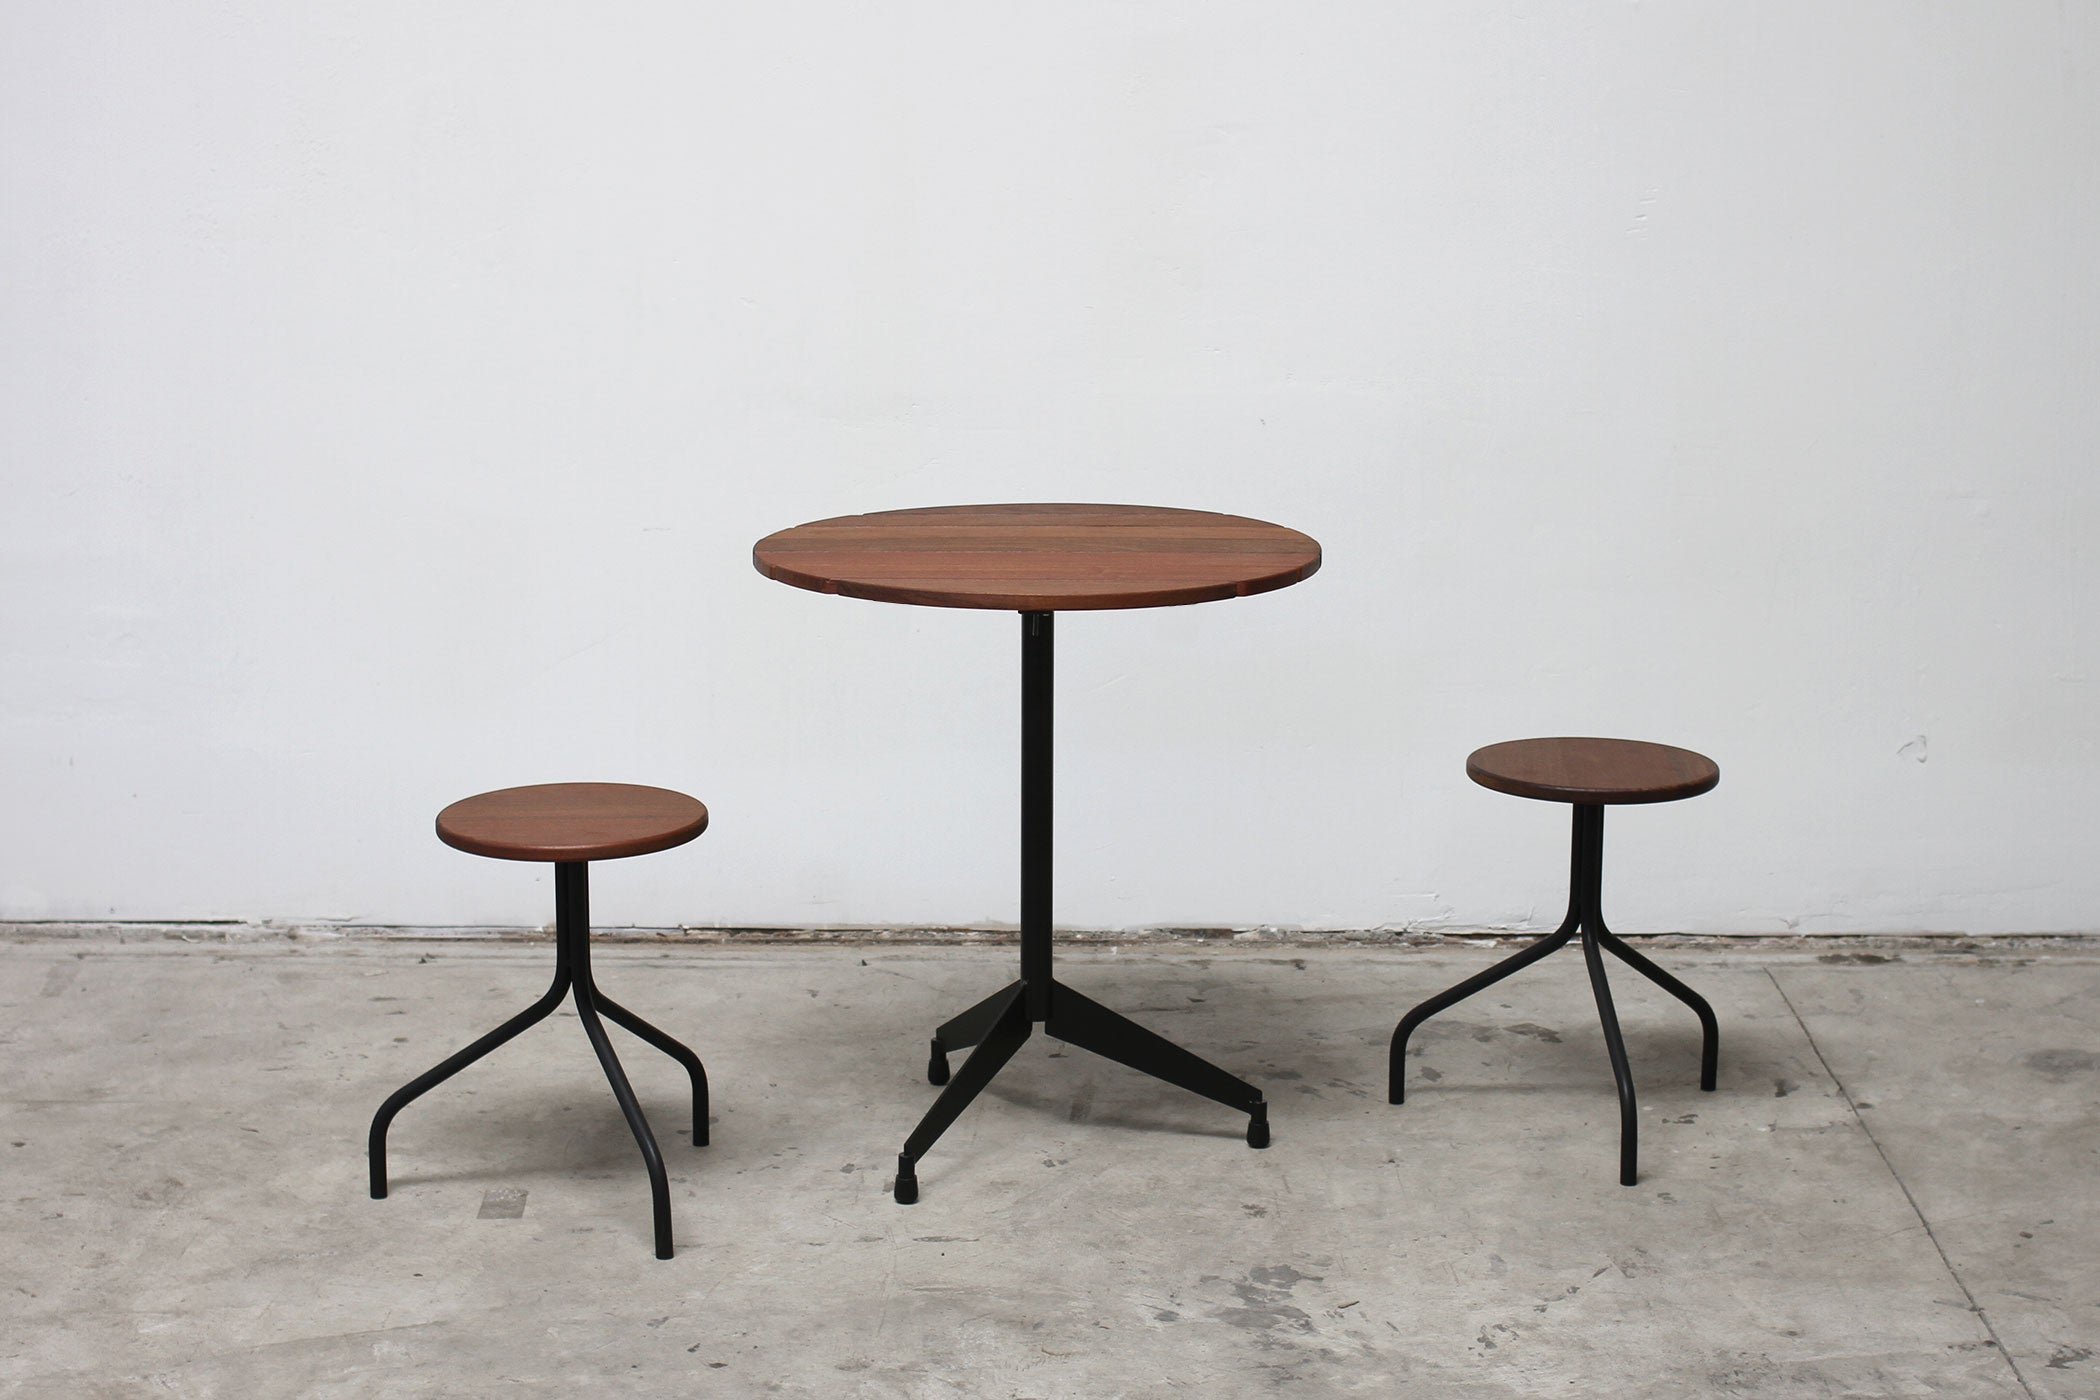 RAD Furniture's Slatted Wood Round Cafe Table with Round Wood-Top Stools